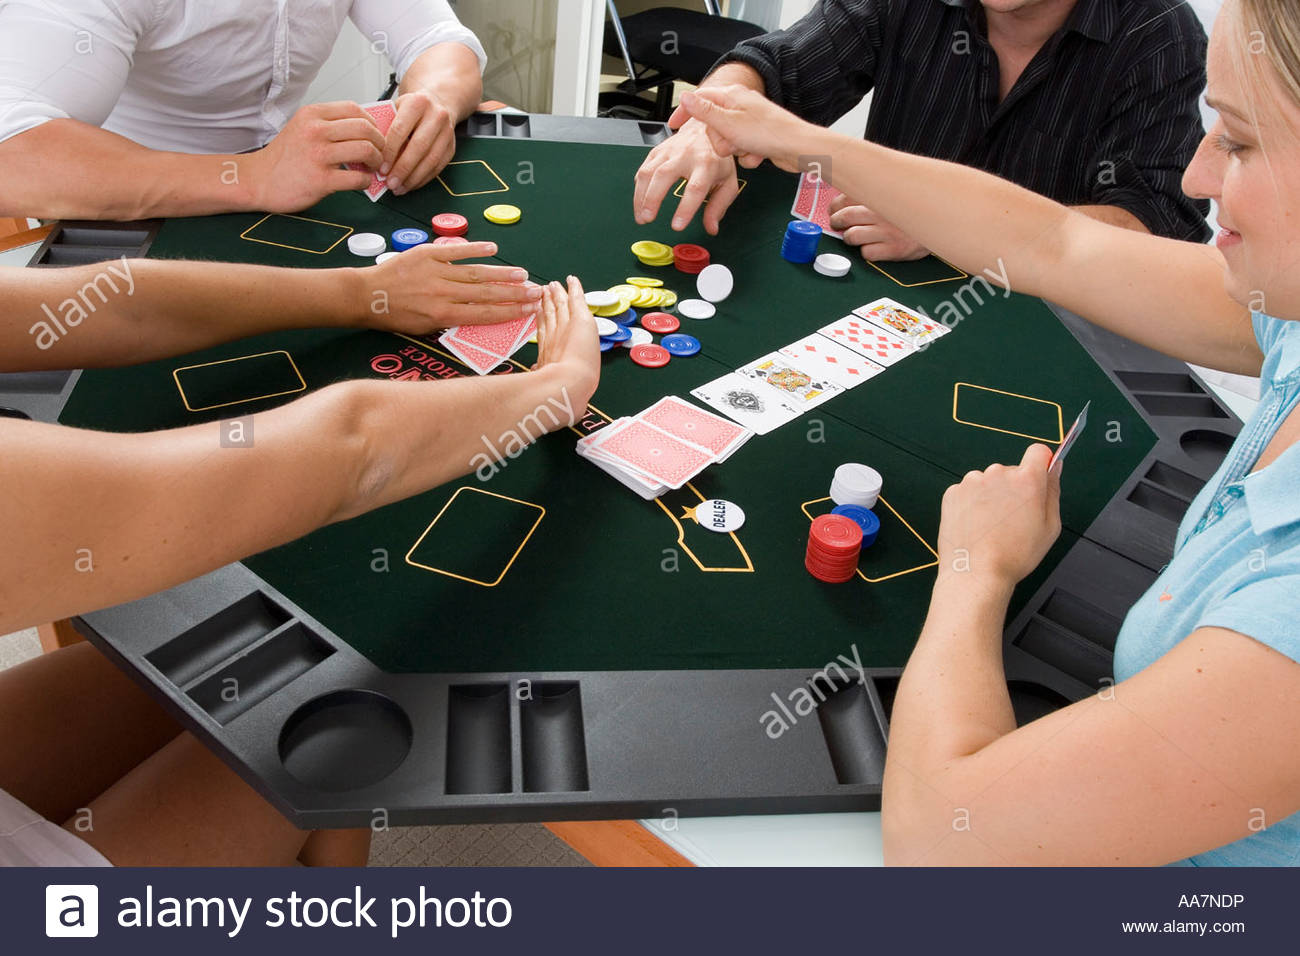 Friends playing poker at home - Stock Image